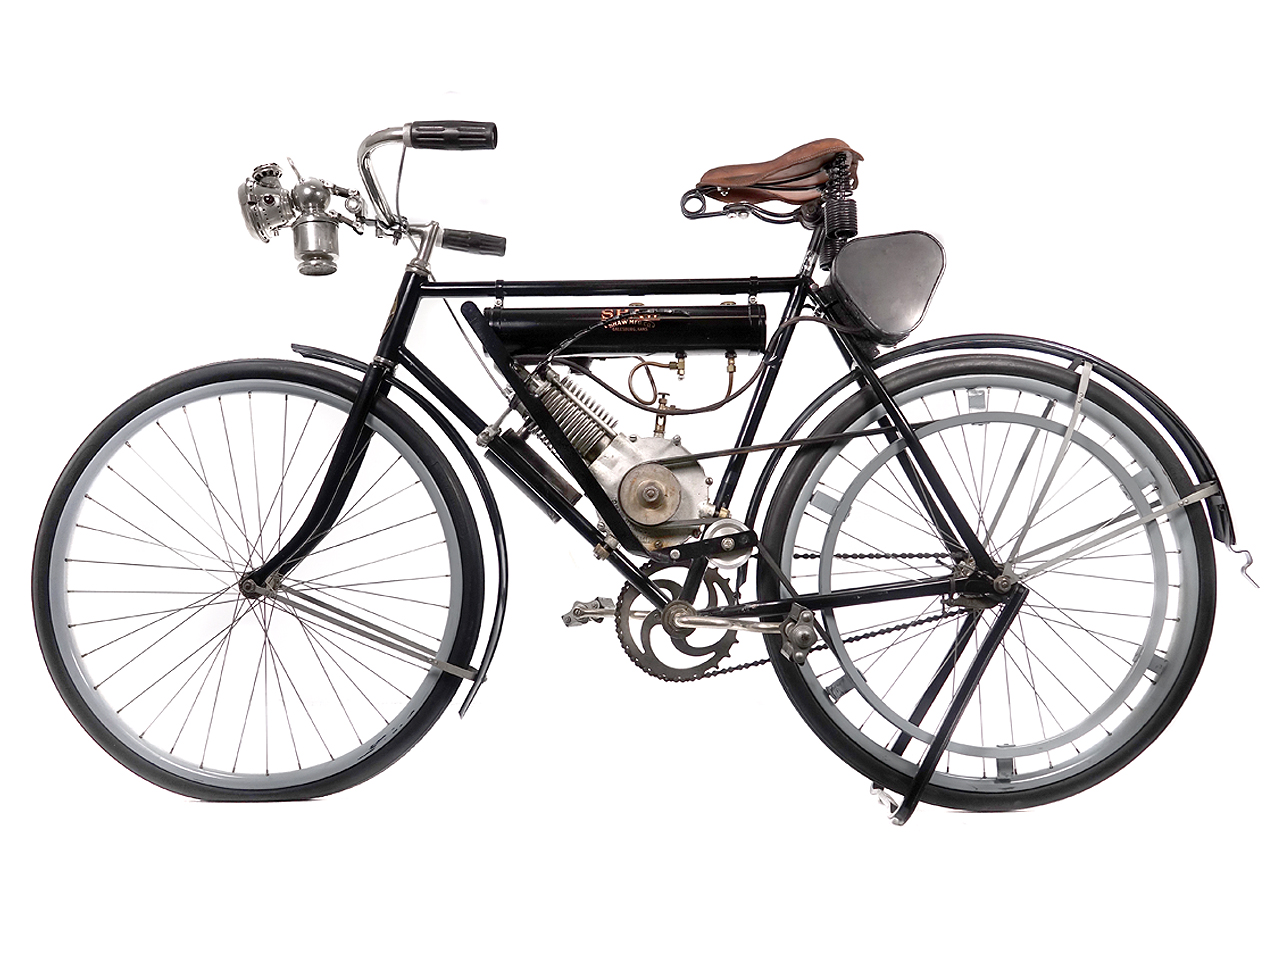 1913 Shaw Lightweight Motorcycle